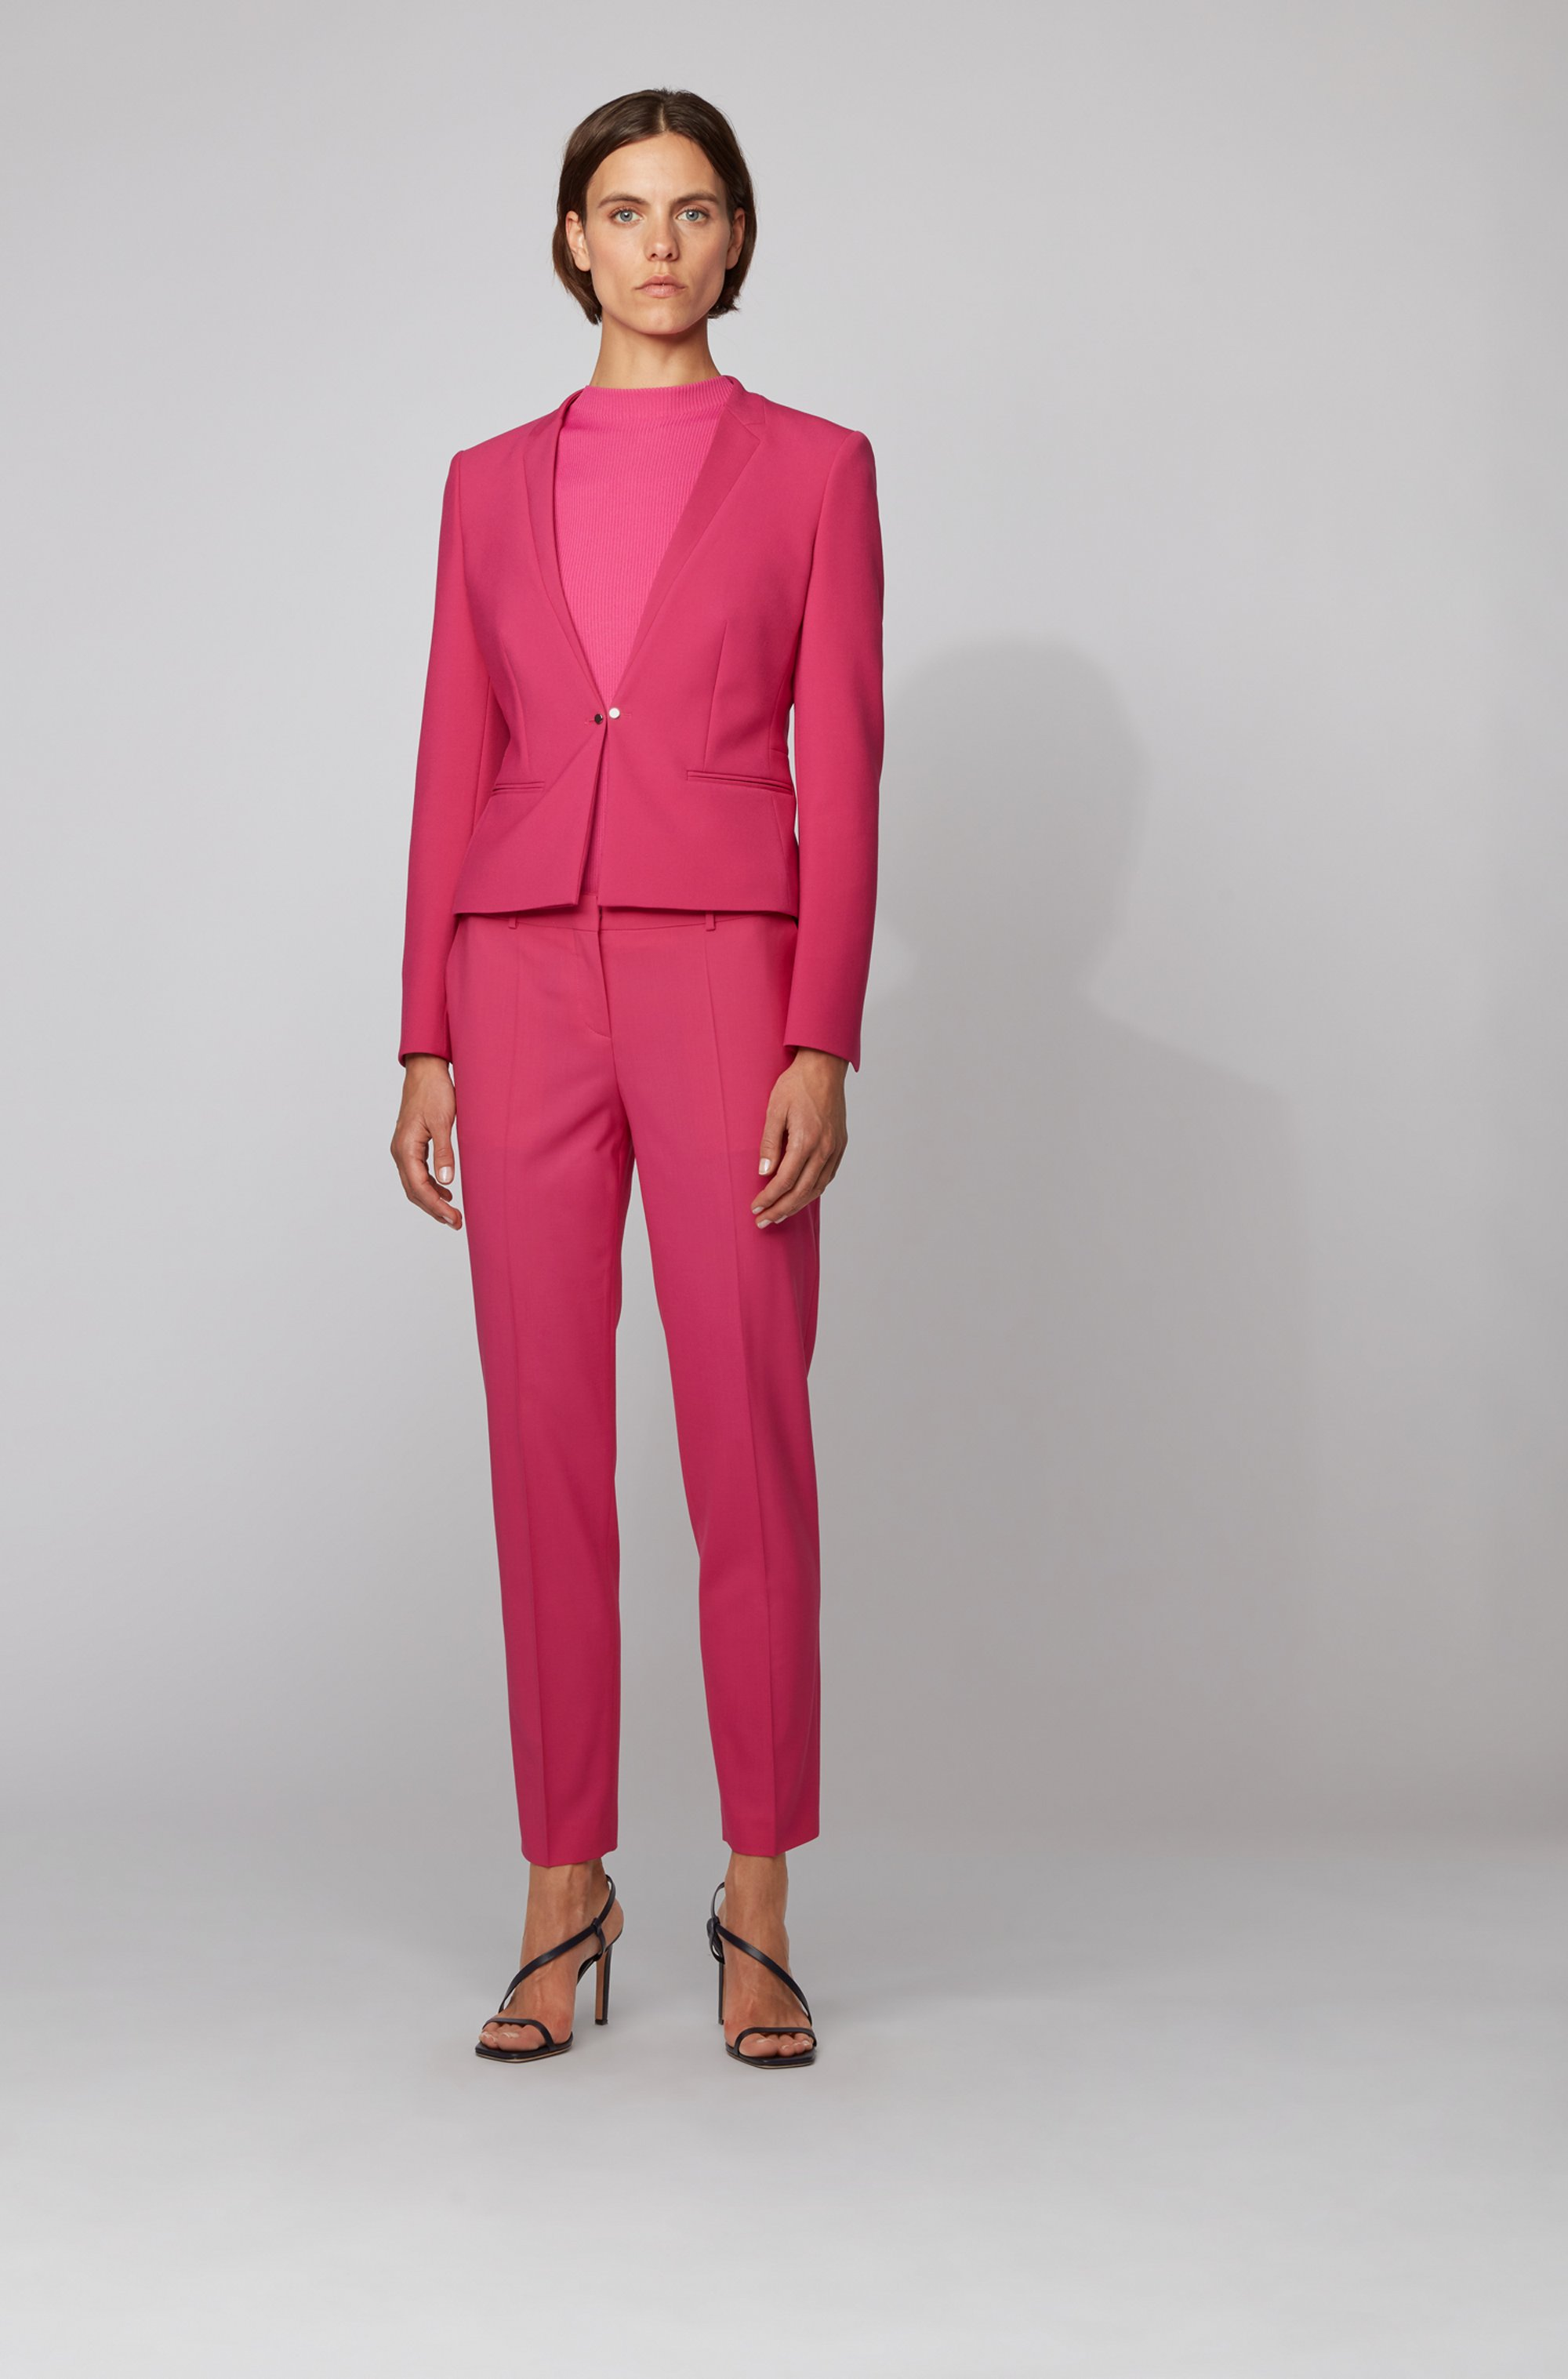 Regular-fit jacket with cufflink-style front closure